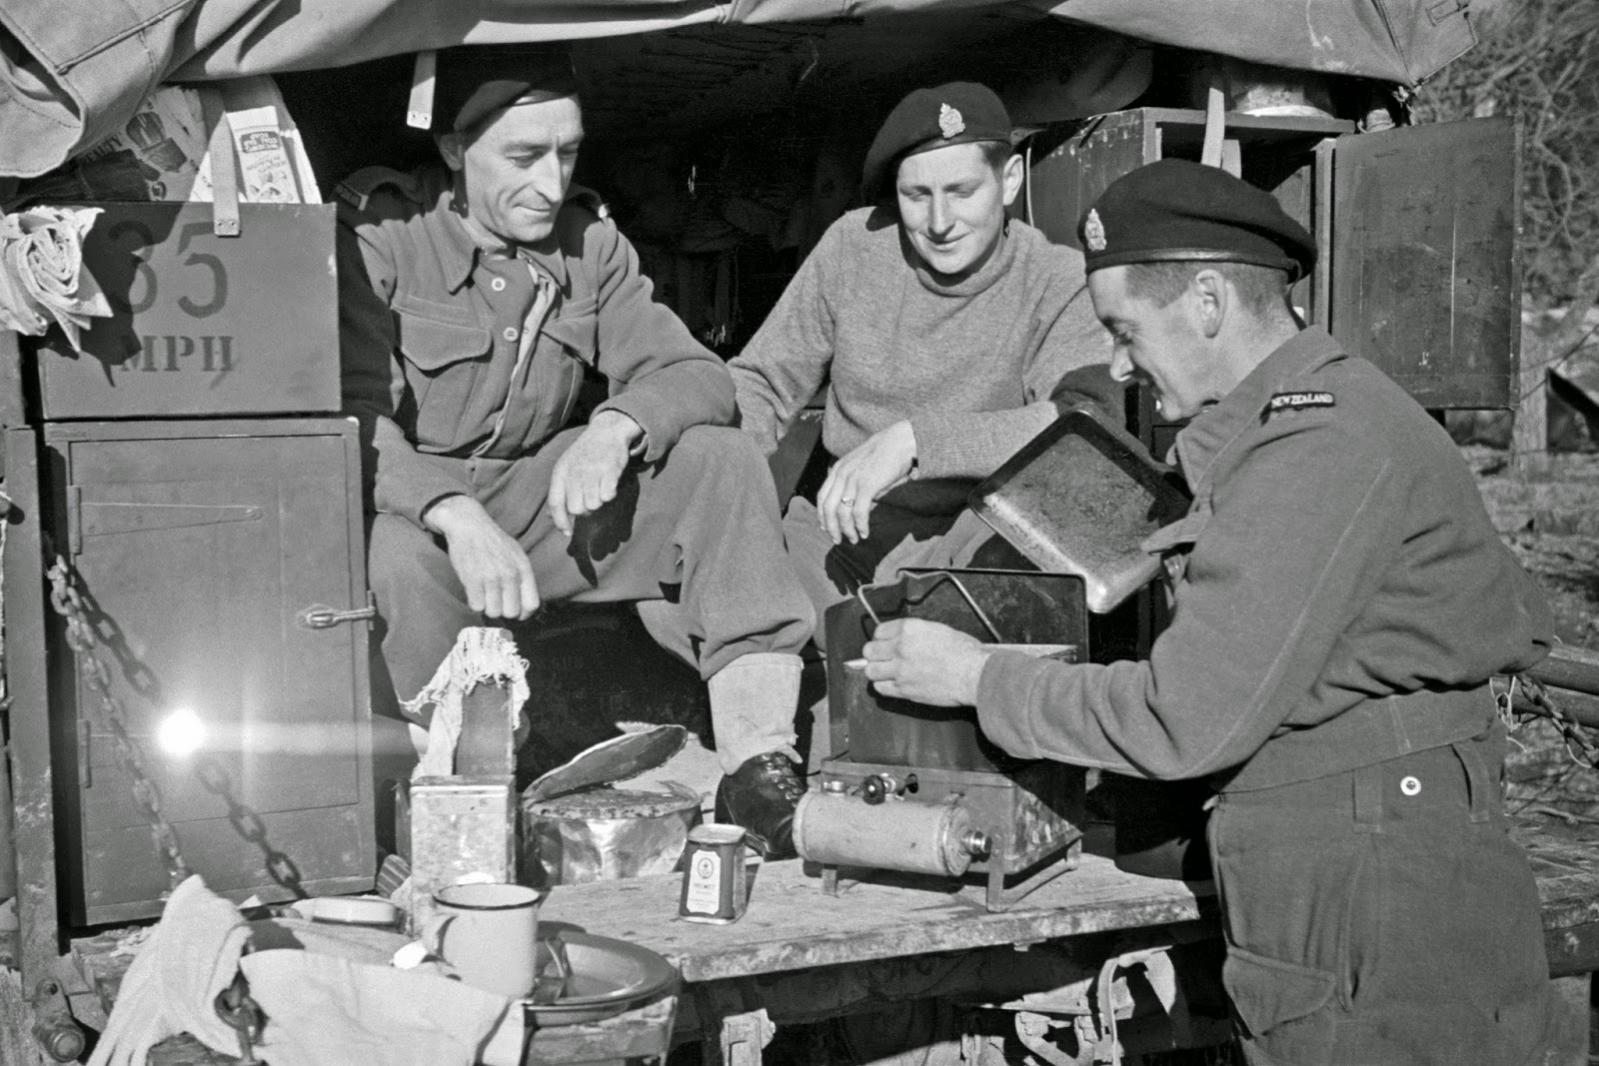 Winter conditions on the 5th Army Front in Italy, during World War II, have resulted in sharpene.jpg